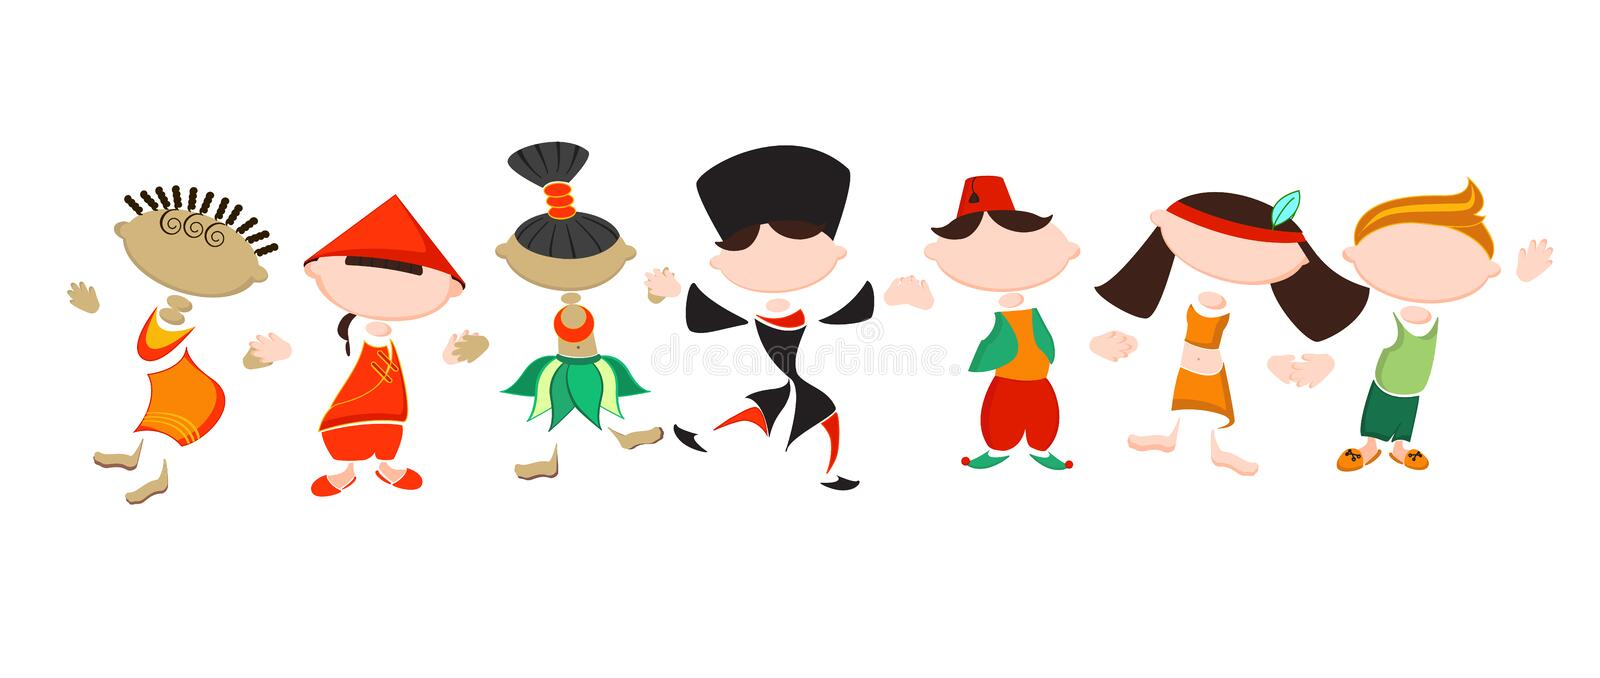 Stylized people in national costumes. Funny stickers of different nationality people. Friendship of Peoples. Traditional costumes. Concept of tolerance royalty free illustration